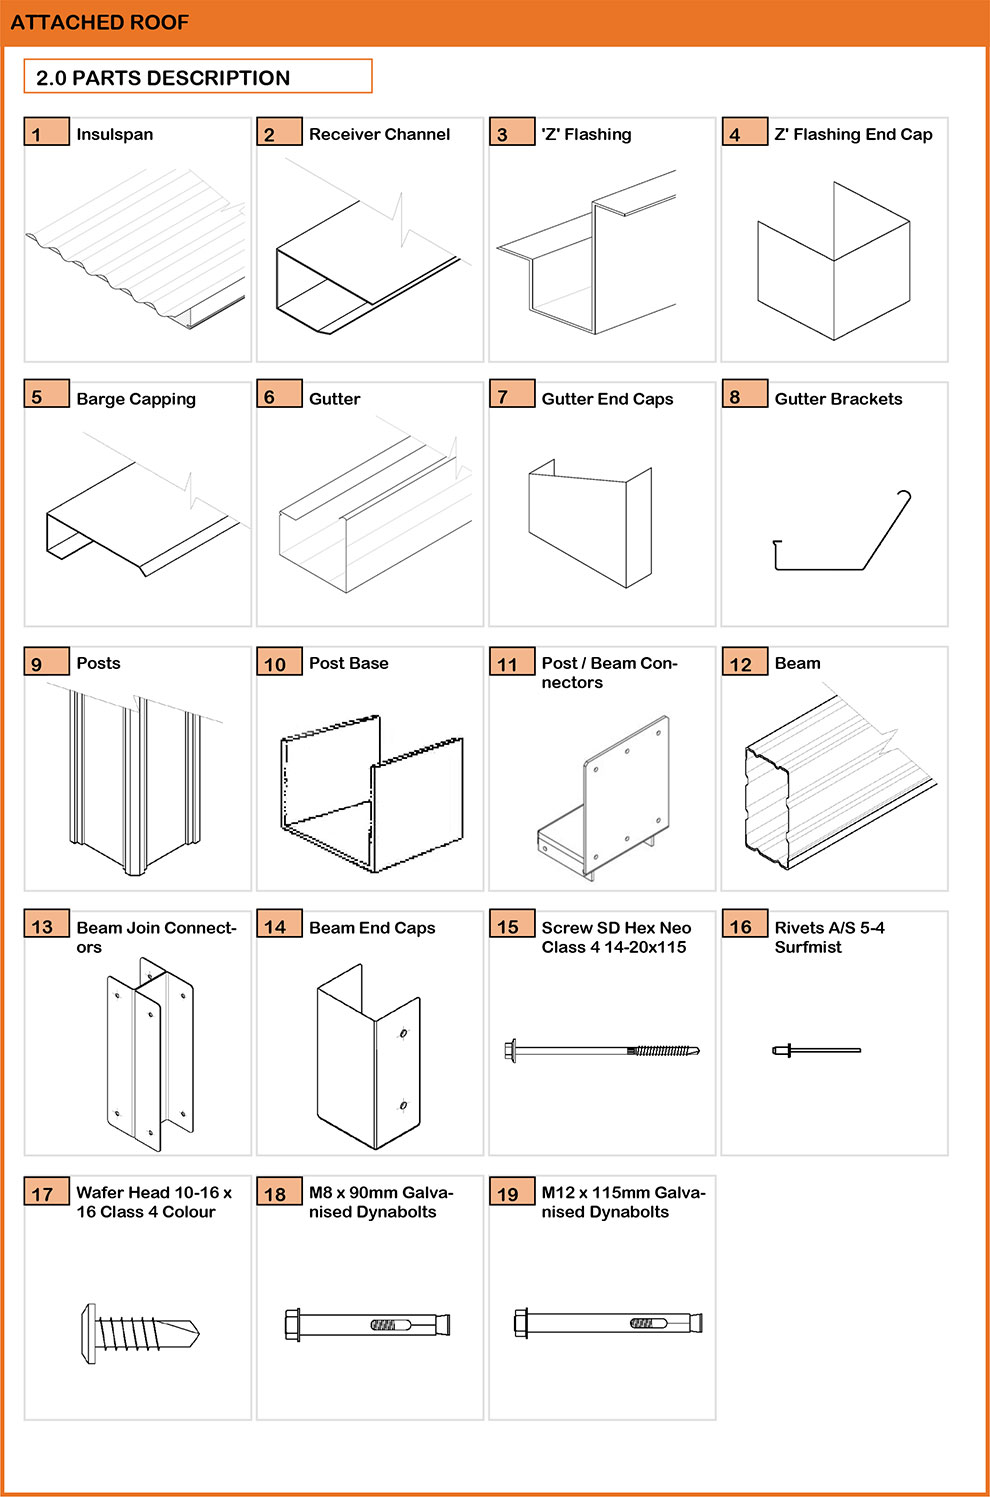 INSULSPAN insulated roofing panels parts list and descriptions.